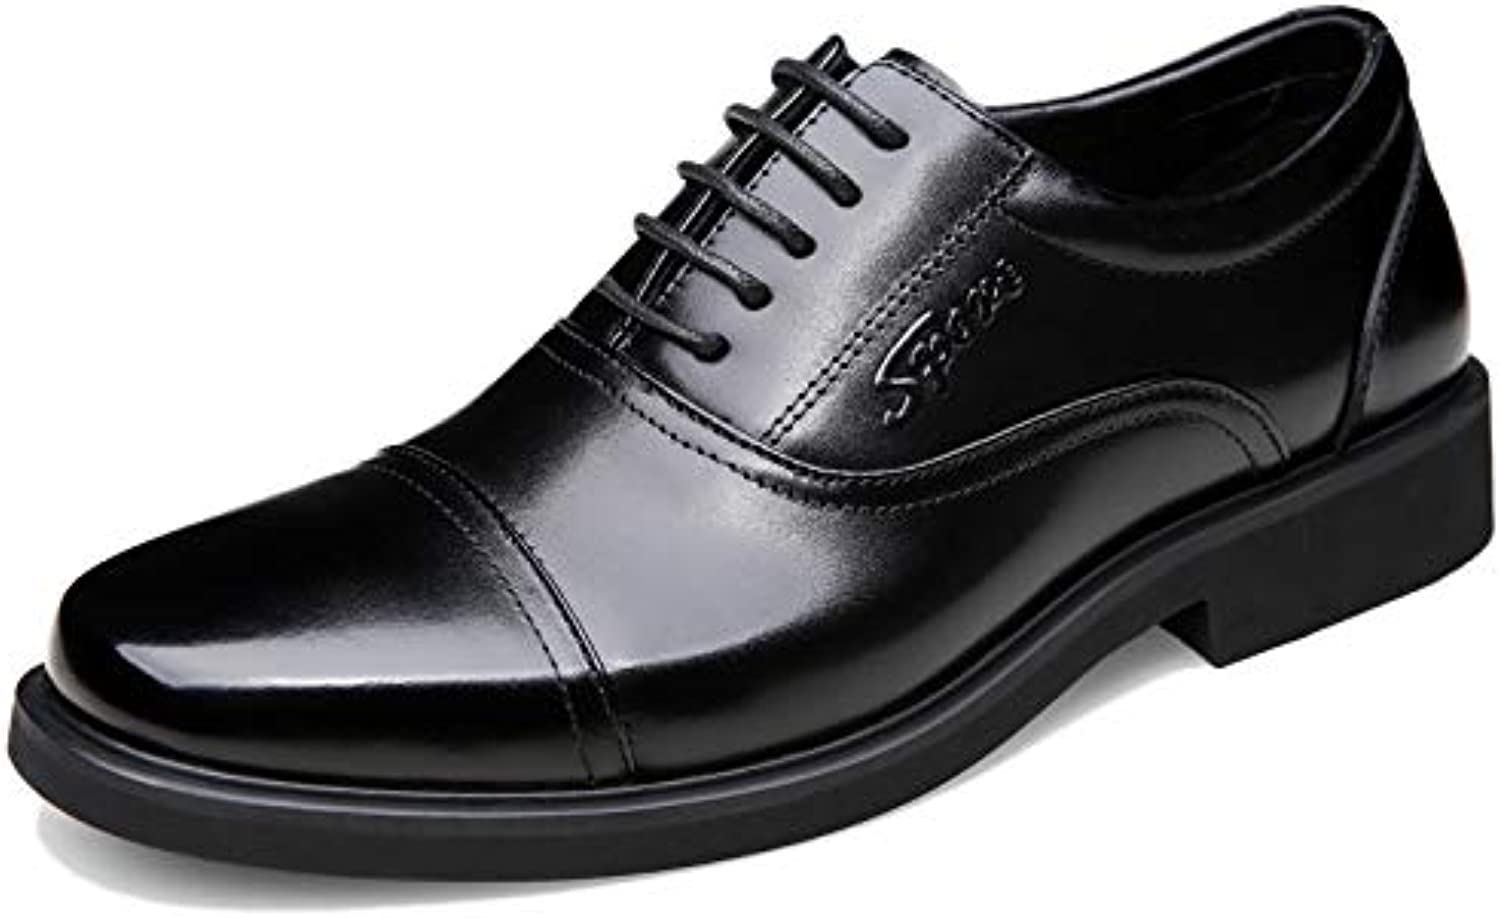 YongBe Uomo Business Formale Scarpe Stringate in Pelle Nera Oxford Smart Office Work Derby Uomini Wedding Party... | Ogni articolo descritto è disponibile